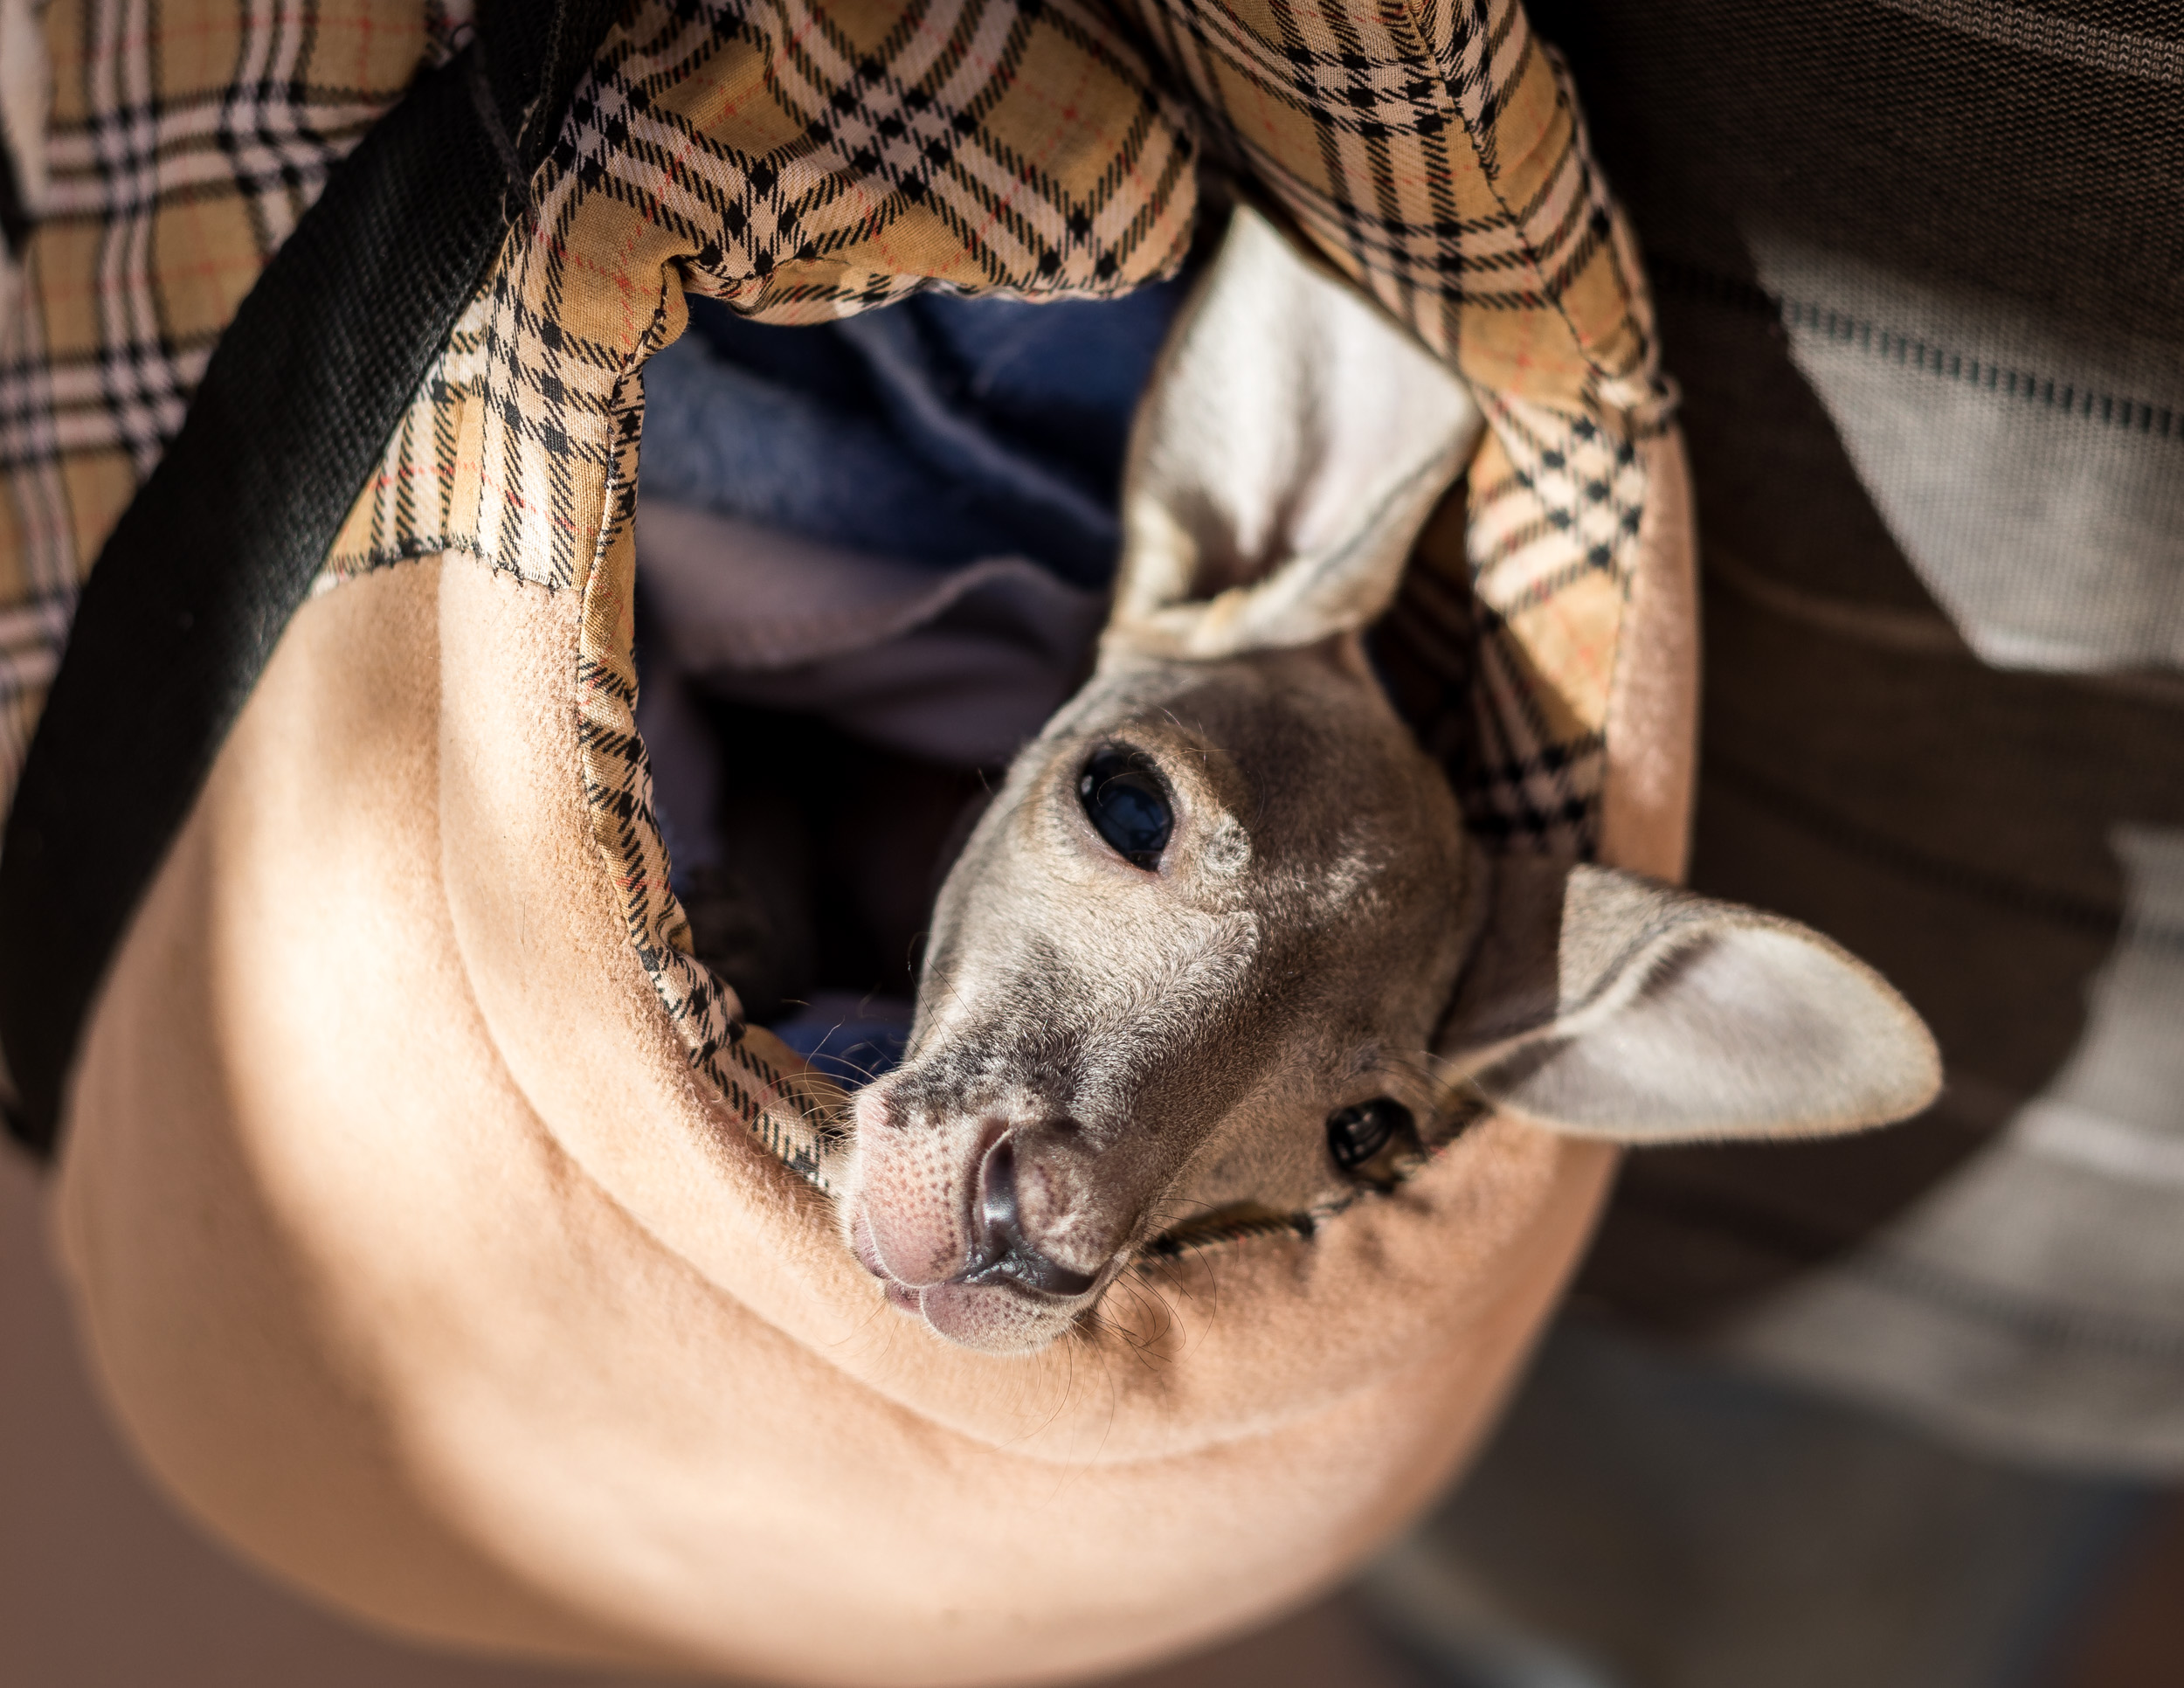 Best things to do in Coober Pedy: Luke the Joey